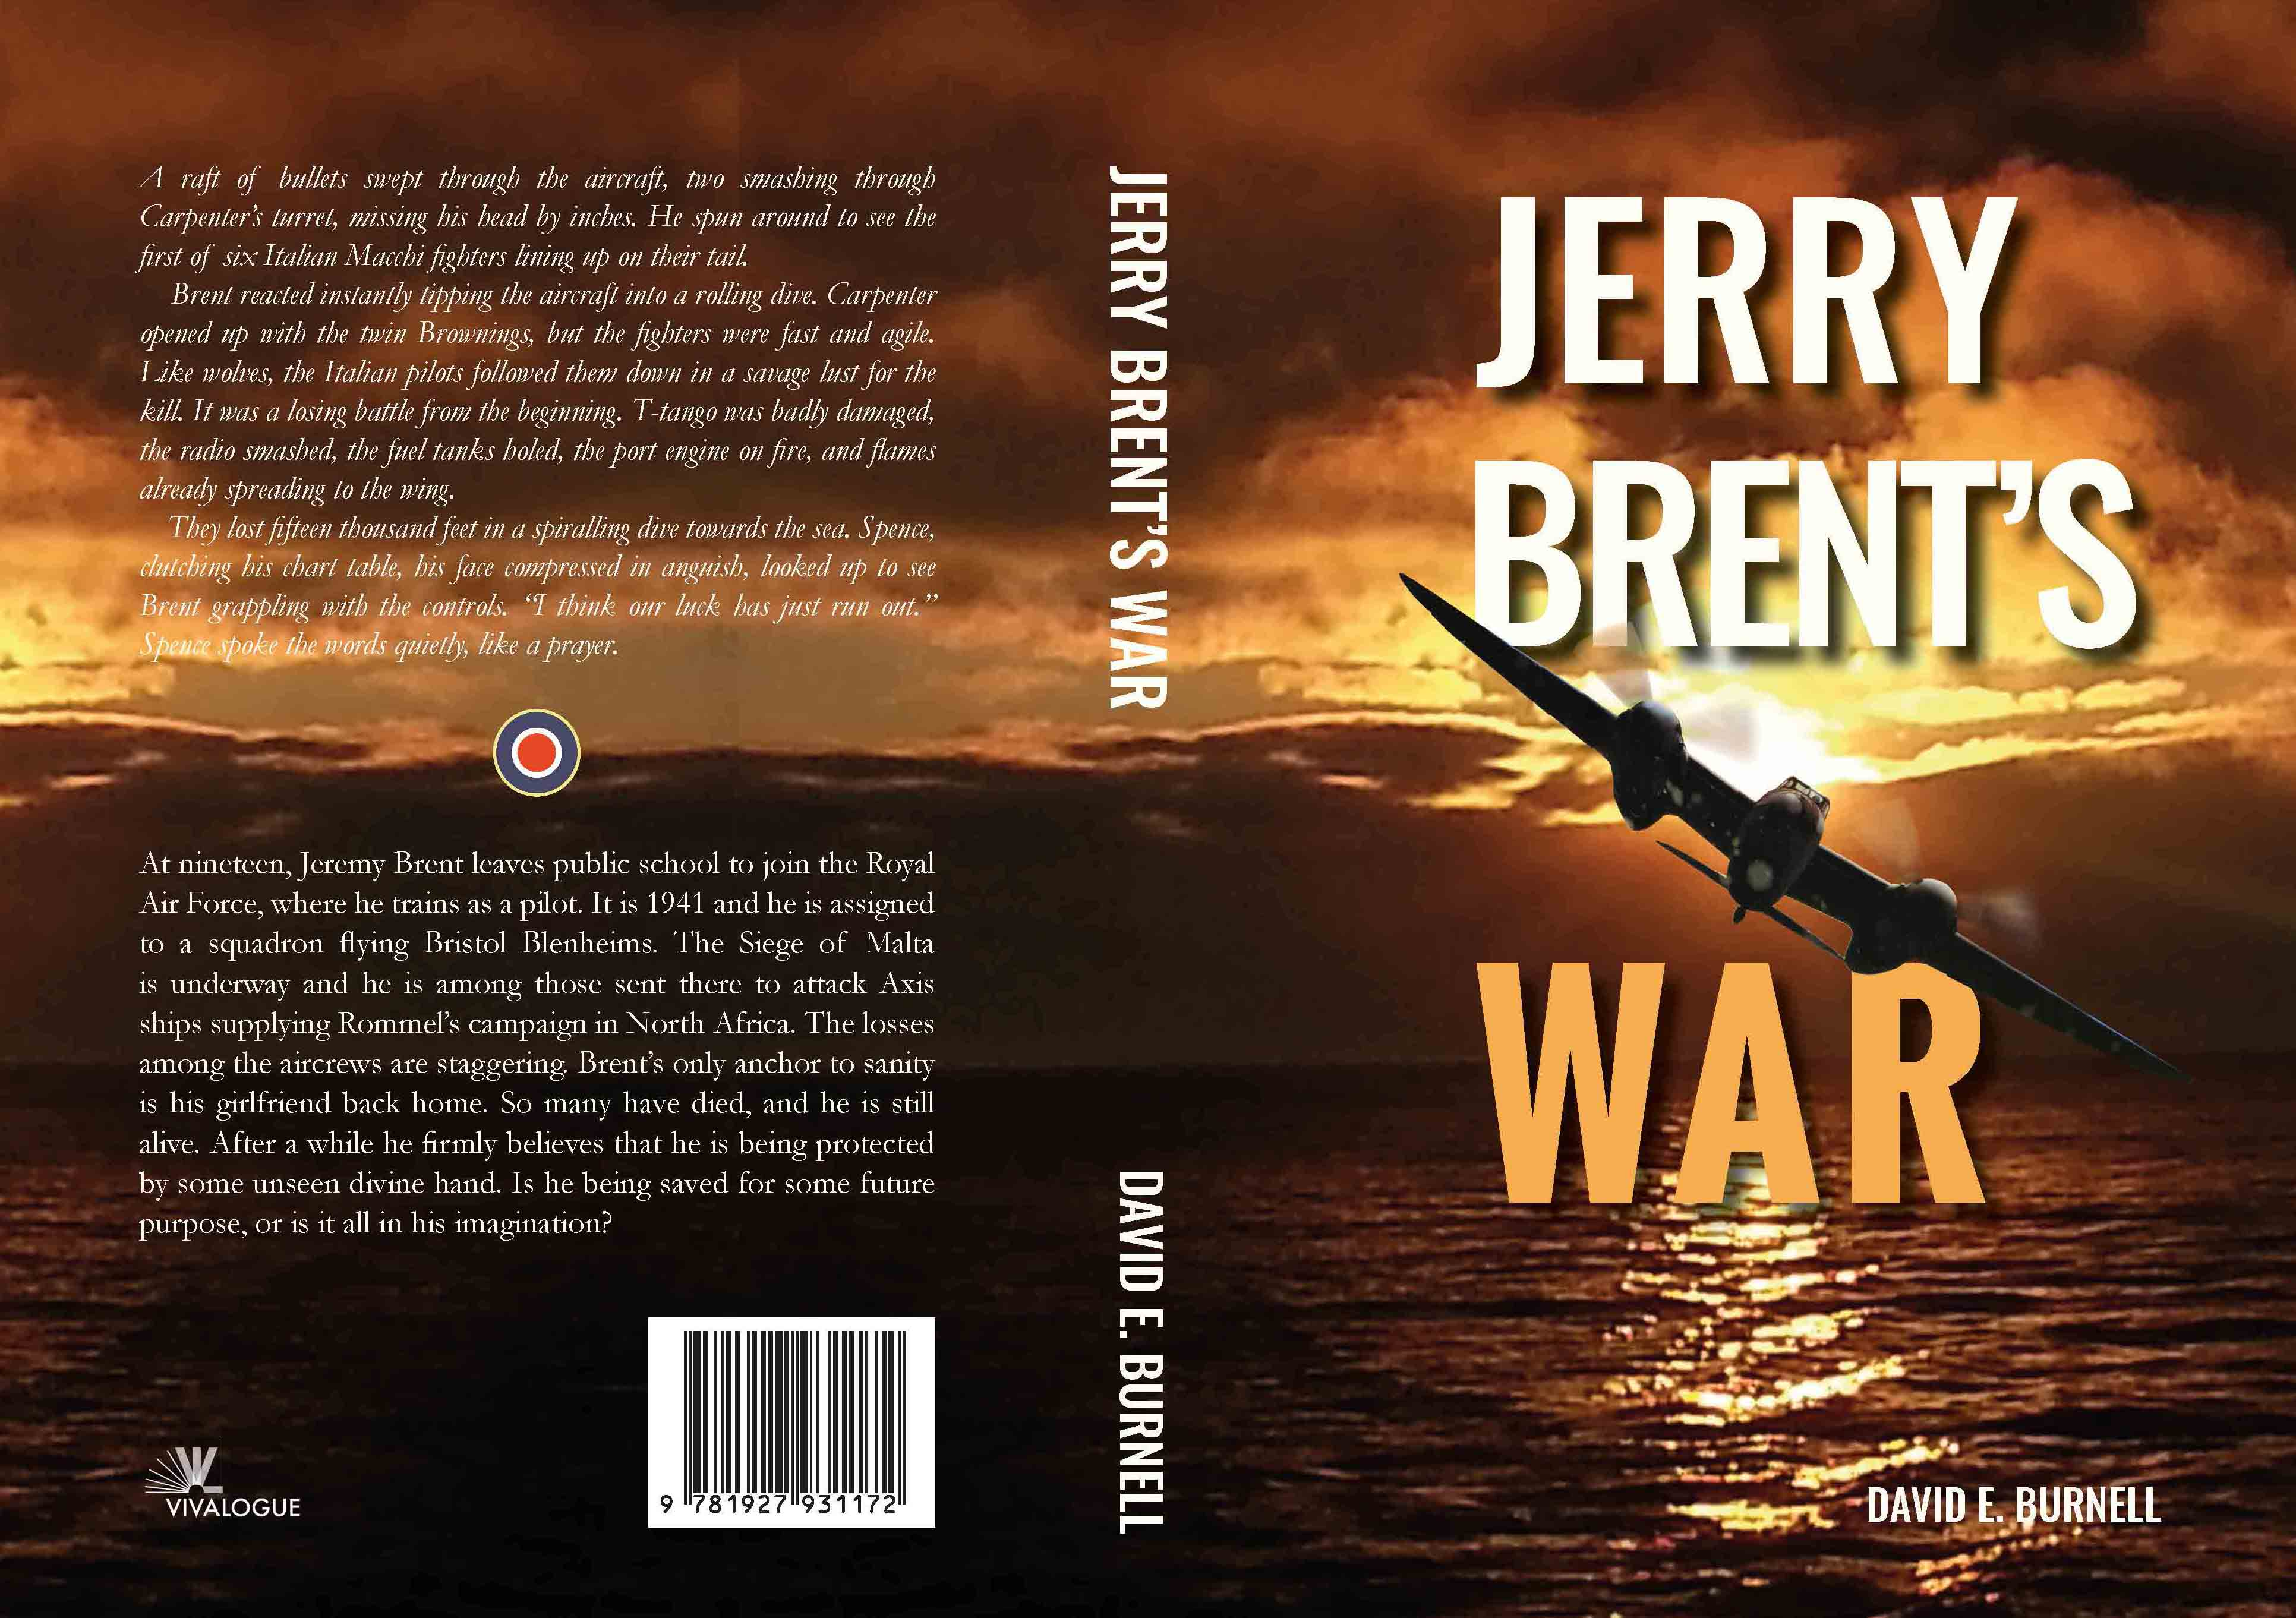 Jerry Brent's War